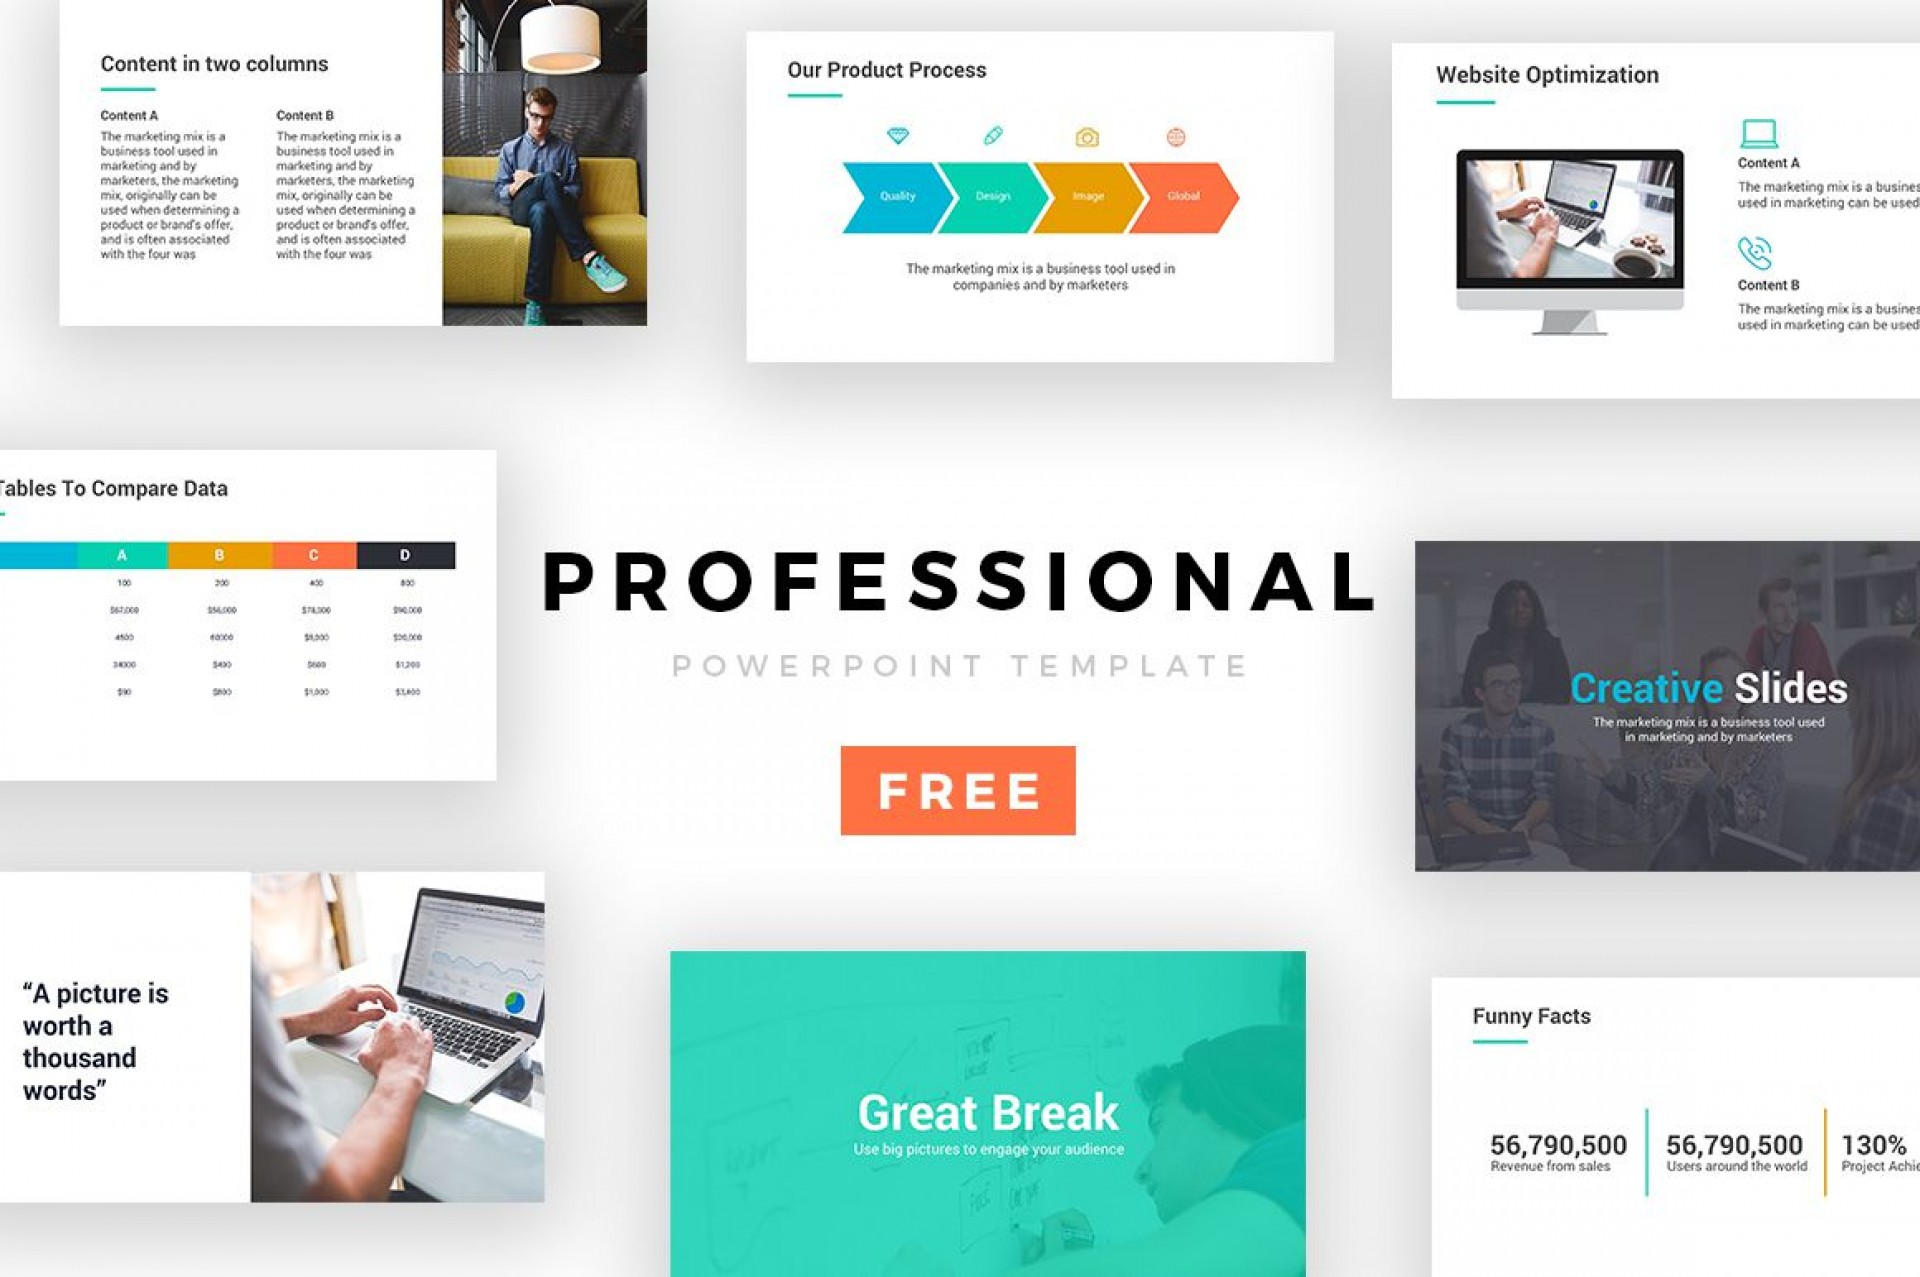 007 Staggering Professional Powerpoint Template Free Concept  Download 2019 Medical Mac1920